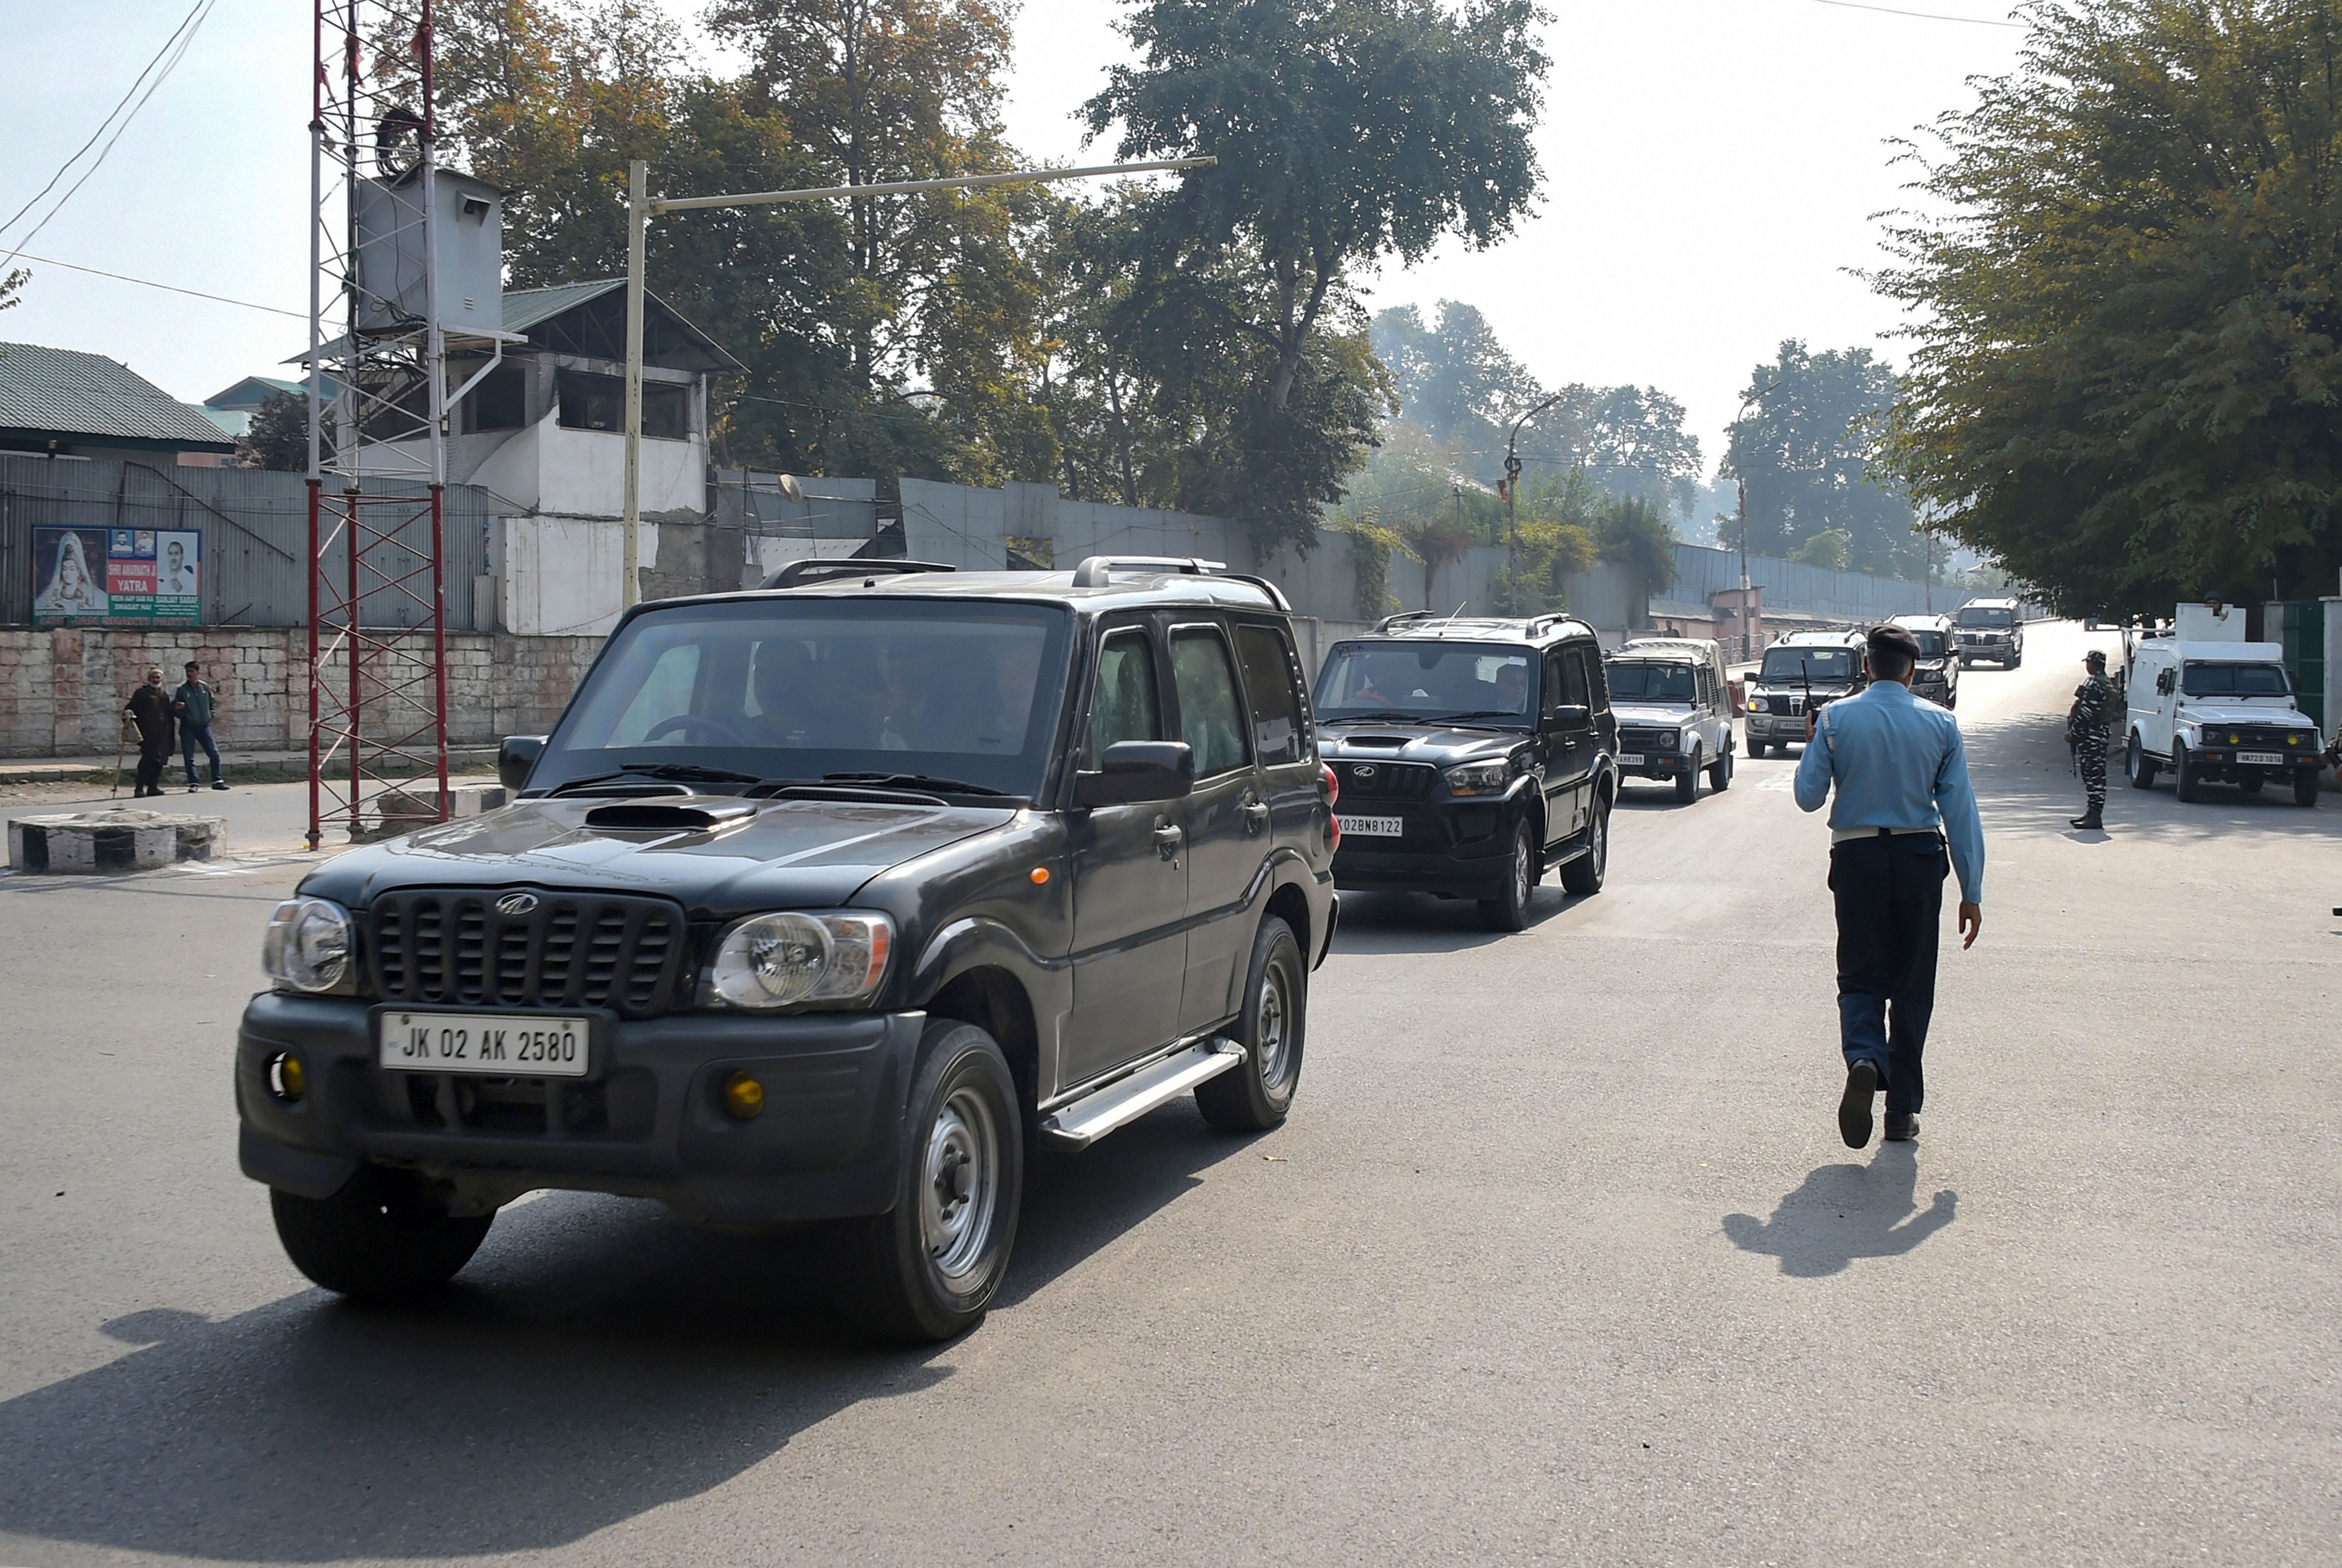 The motorcade of European Union delegation arrives in Srinagar on a two-day visit, Tuesday, October 29, 2019.